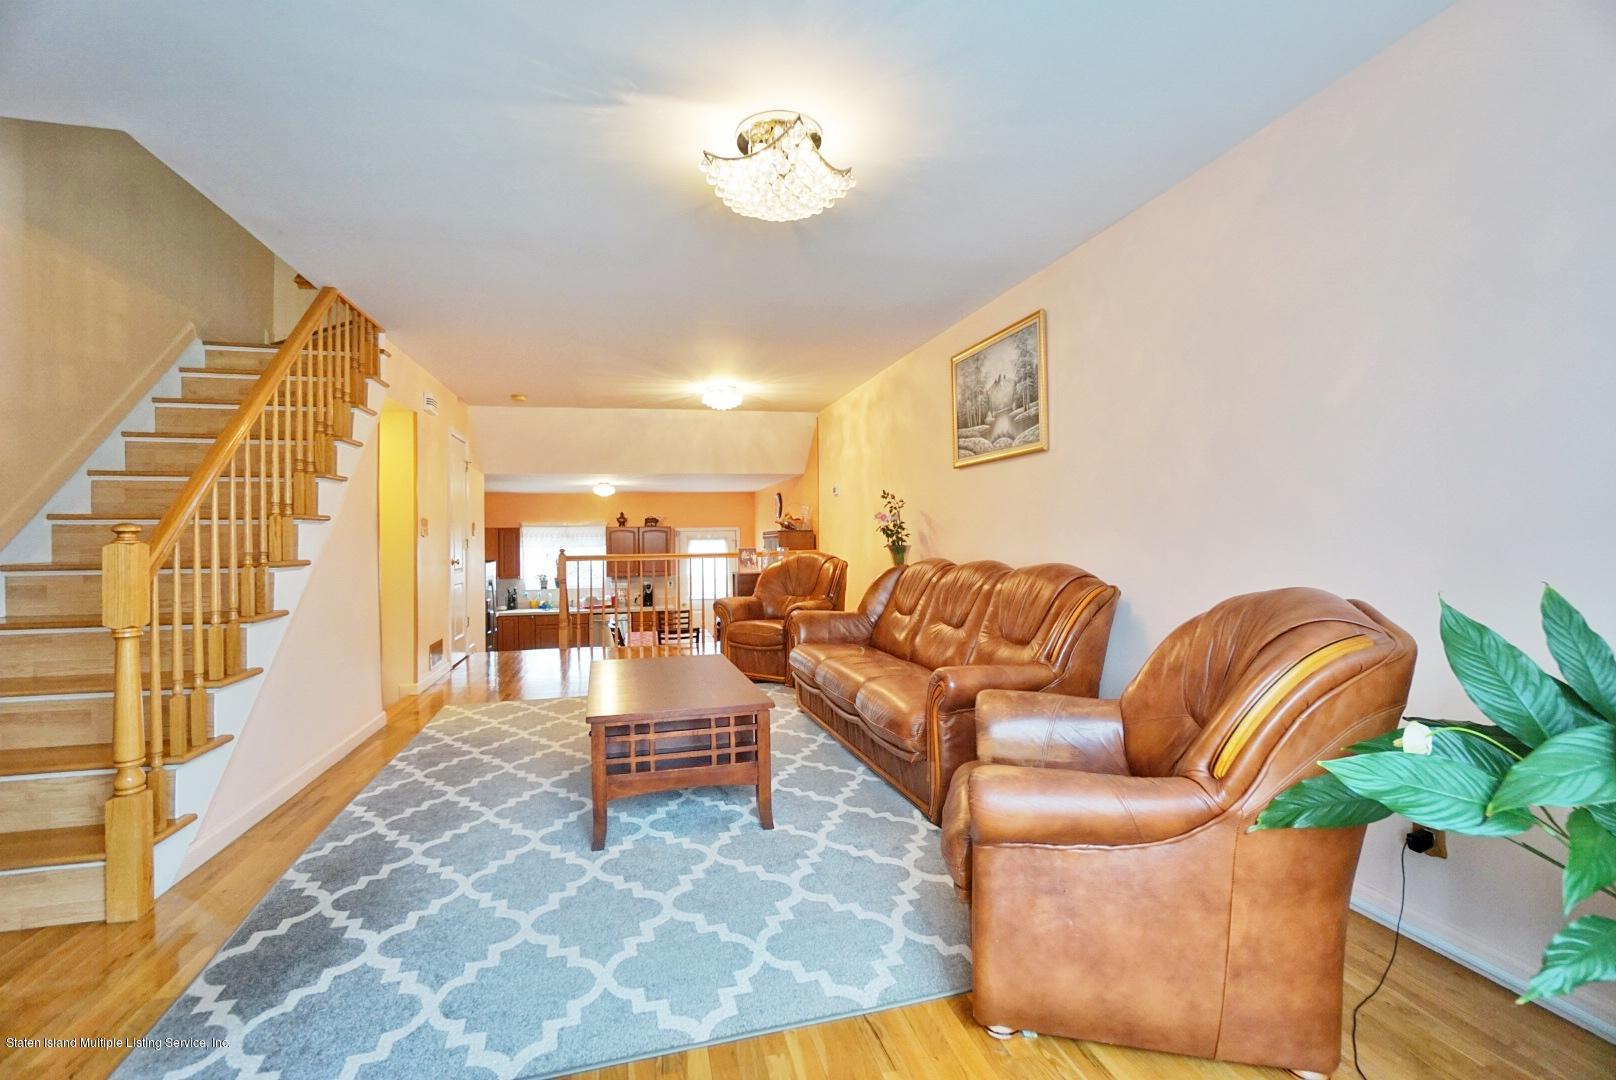 Single Family - Attached 30 Cranberry Court  Staten Island, NY 10309, MLS-1135421-6